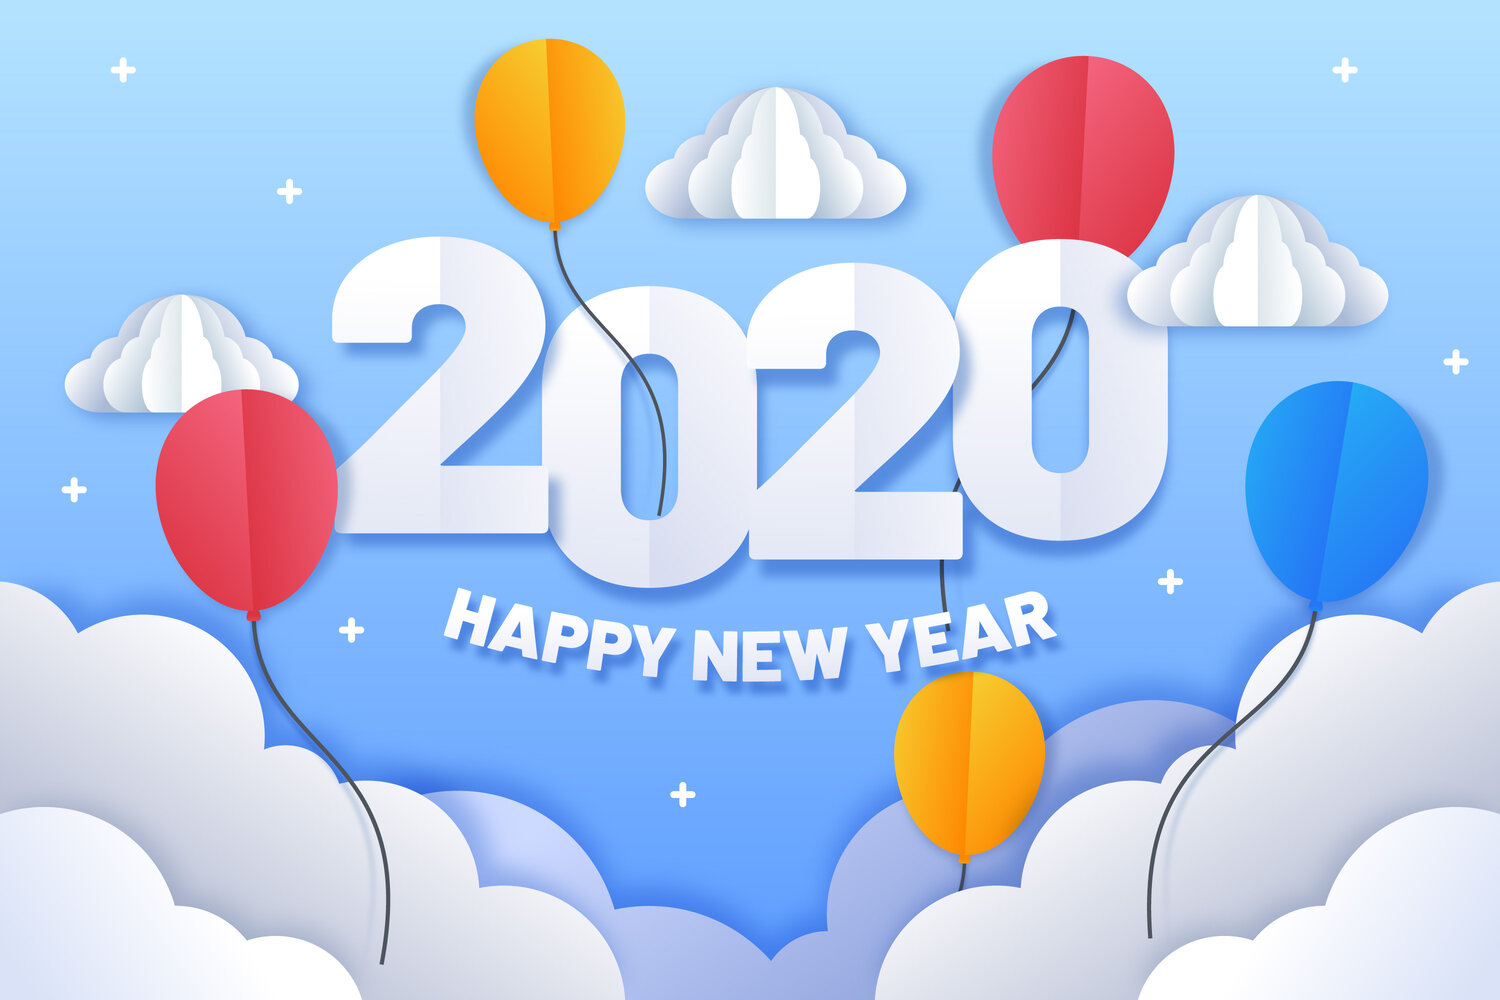 Happy New Year - Hello 2020!